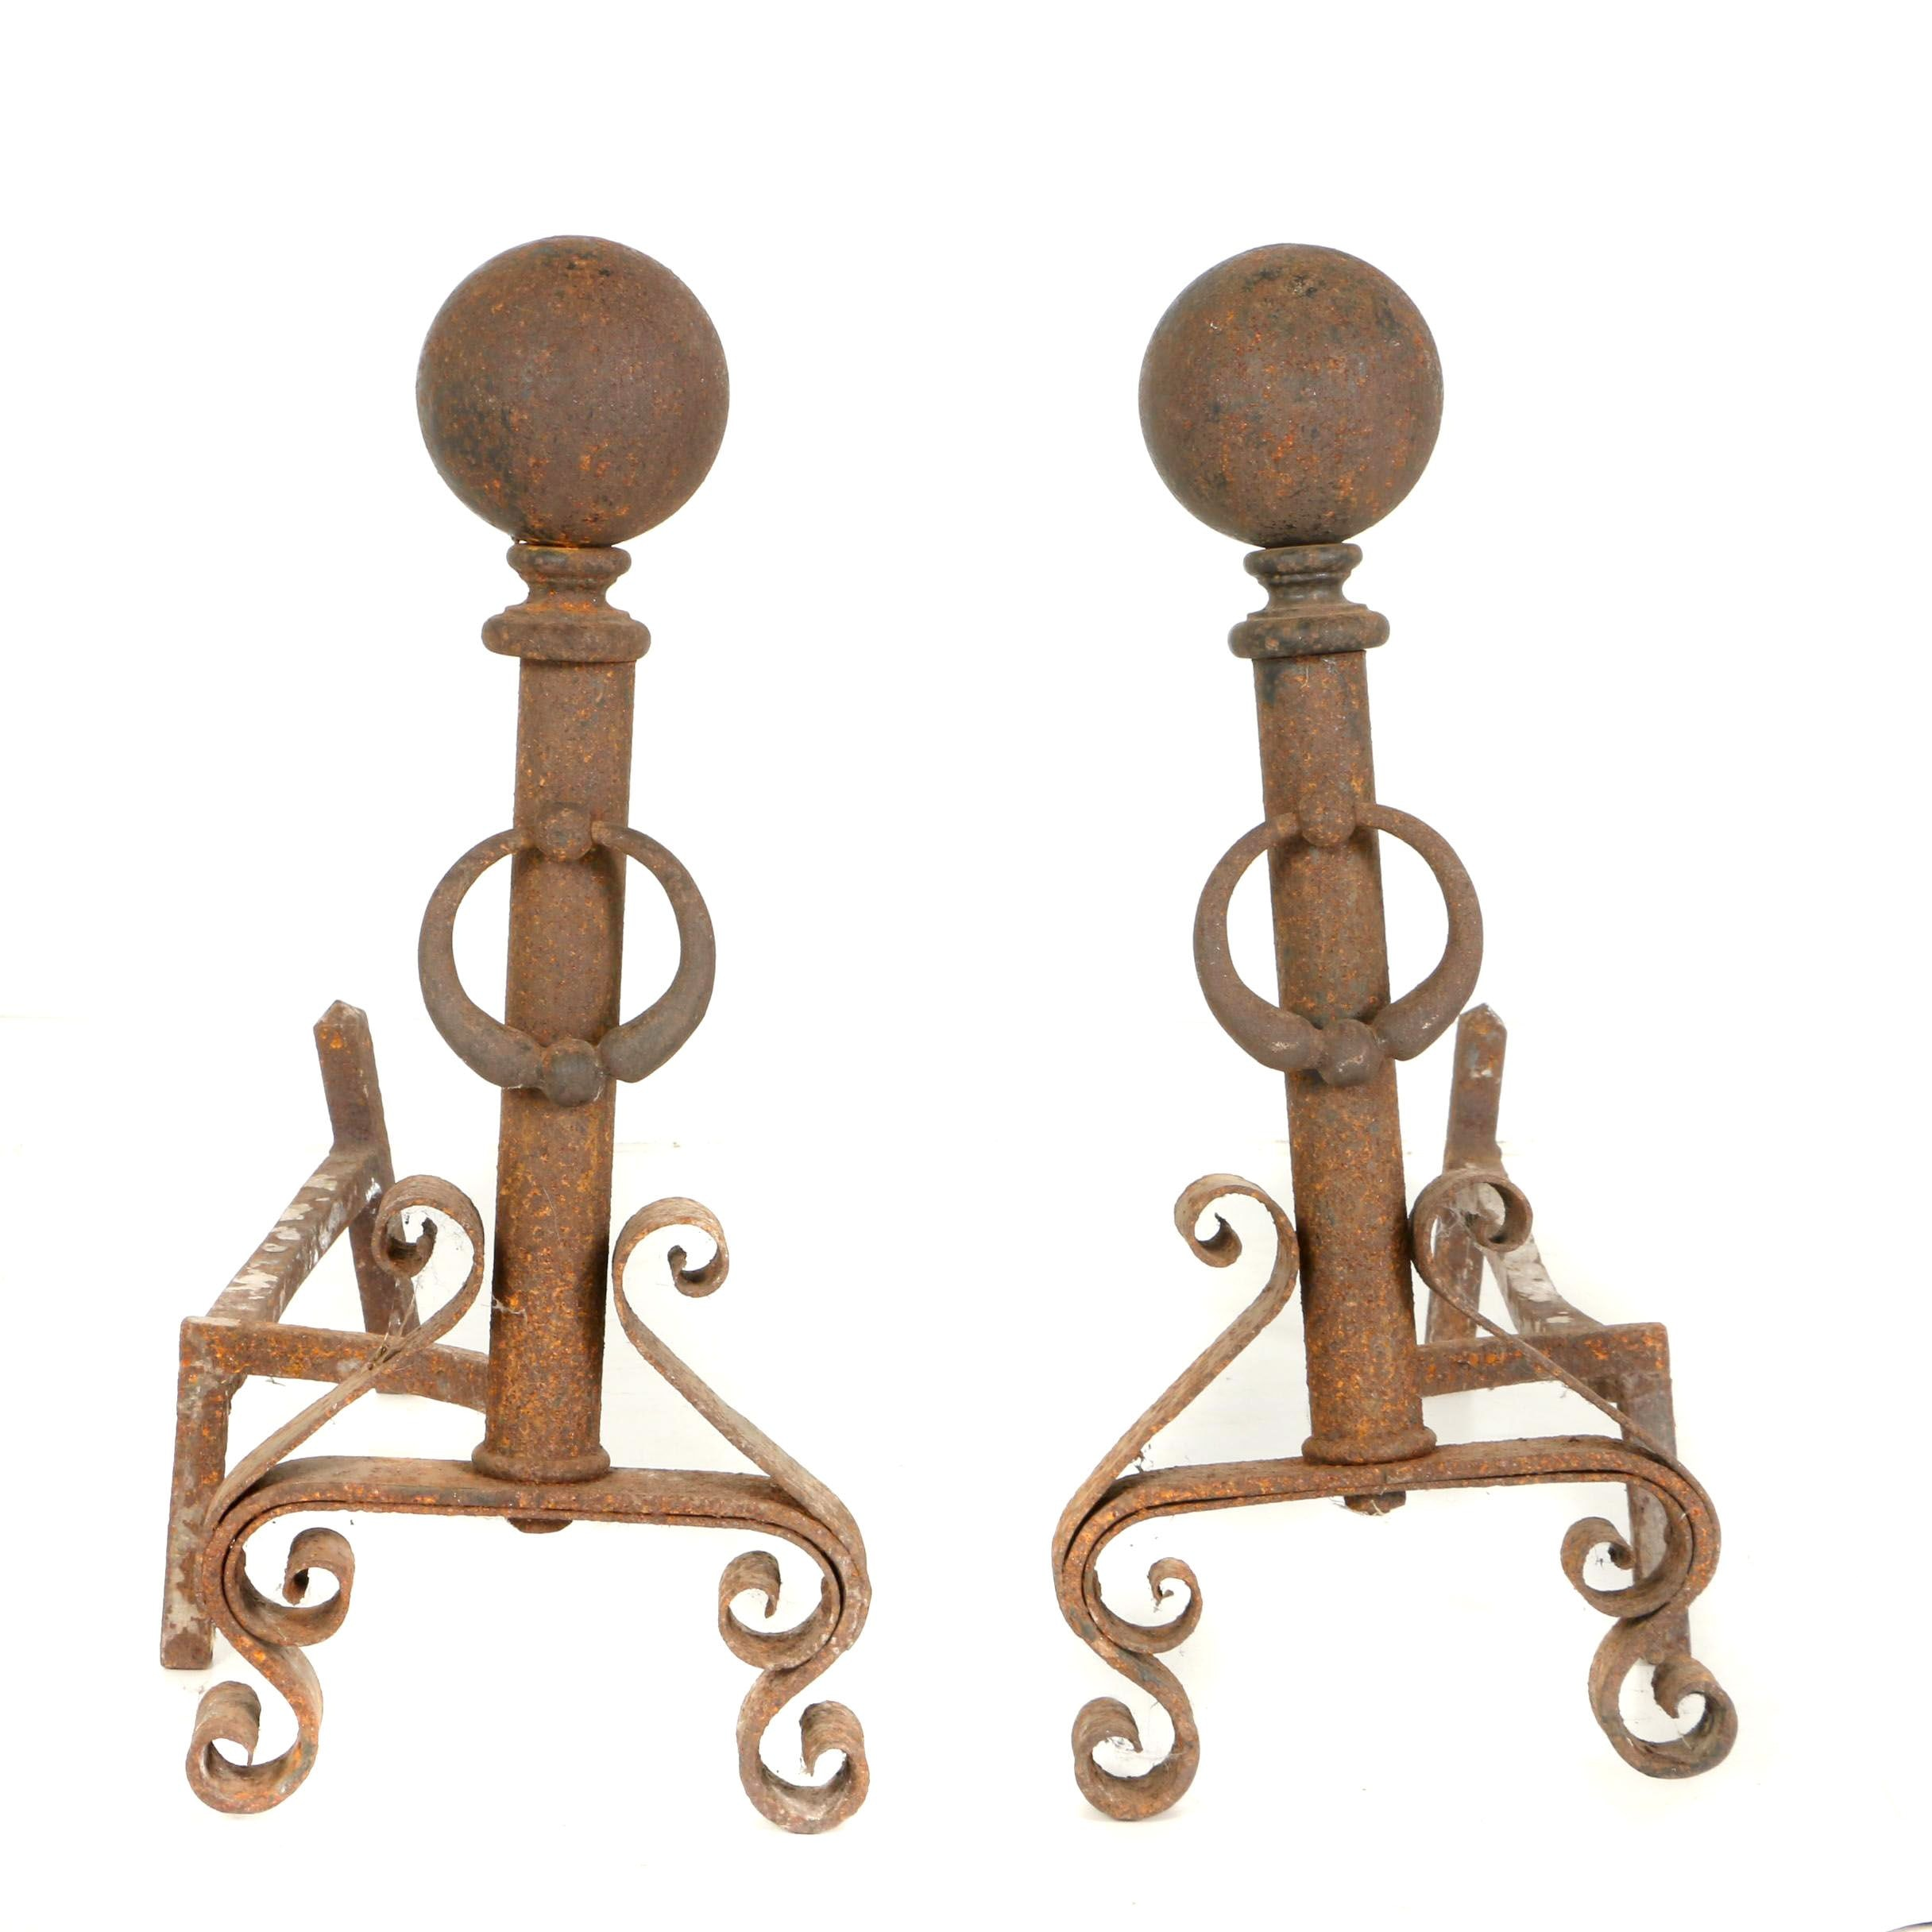 Early Pair of Hand Wrought Andirons, Circa 1860 - 1880